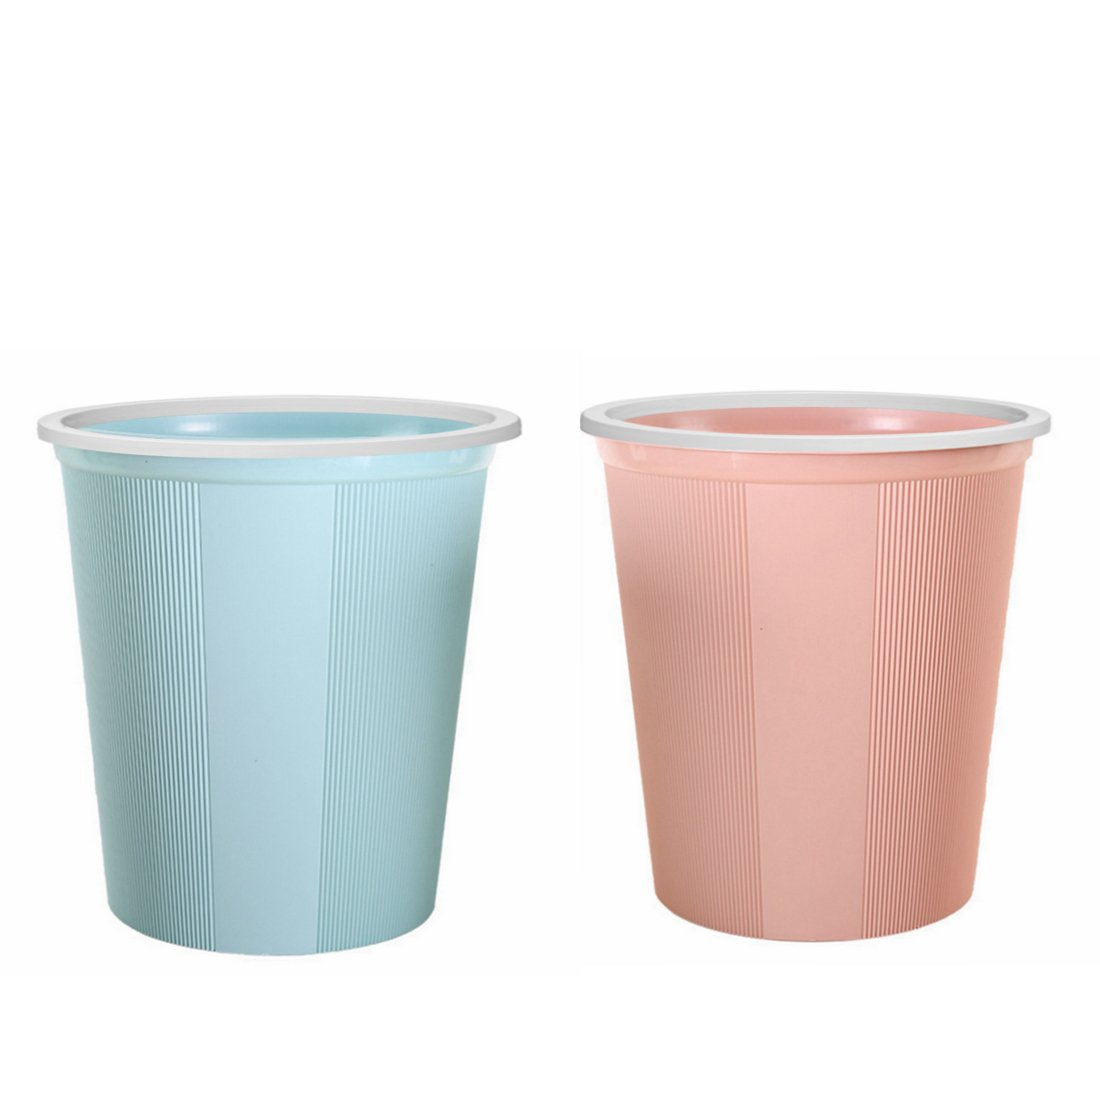 Waste Bin Small, XSHION [2 Pack] Waste Paper Baskets Trash Can Bathroom Garbage Bins without Lid